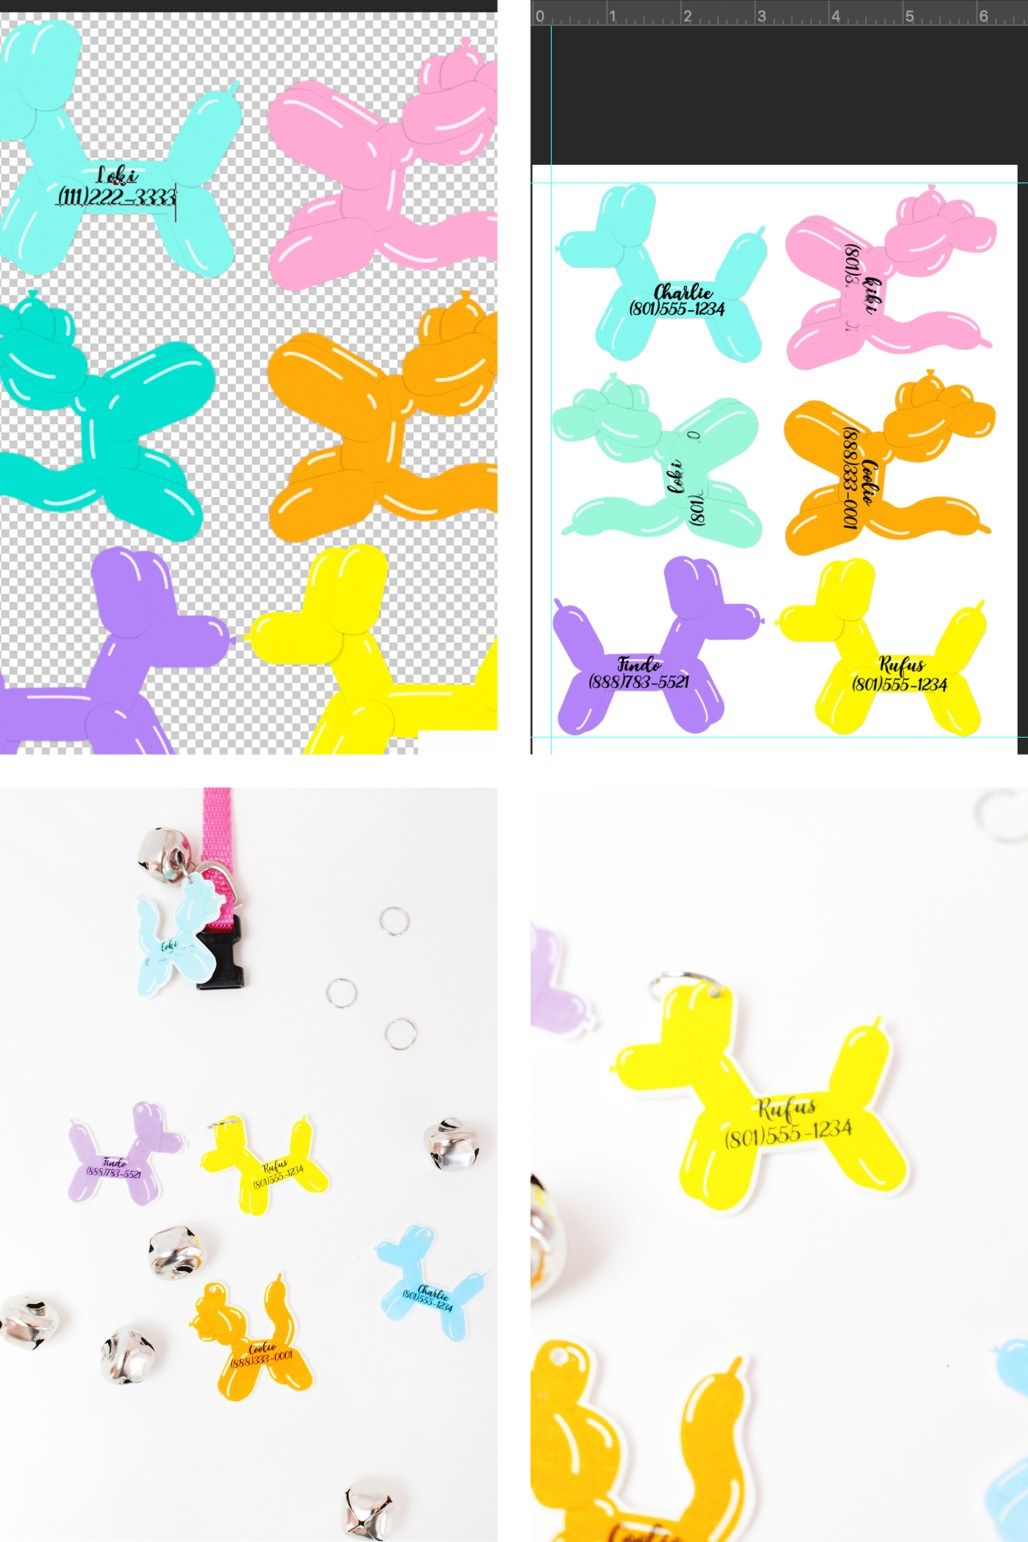 Free Balloon Animal Clipart files to make easy shrink plastic pet tags!